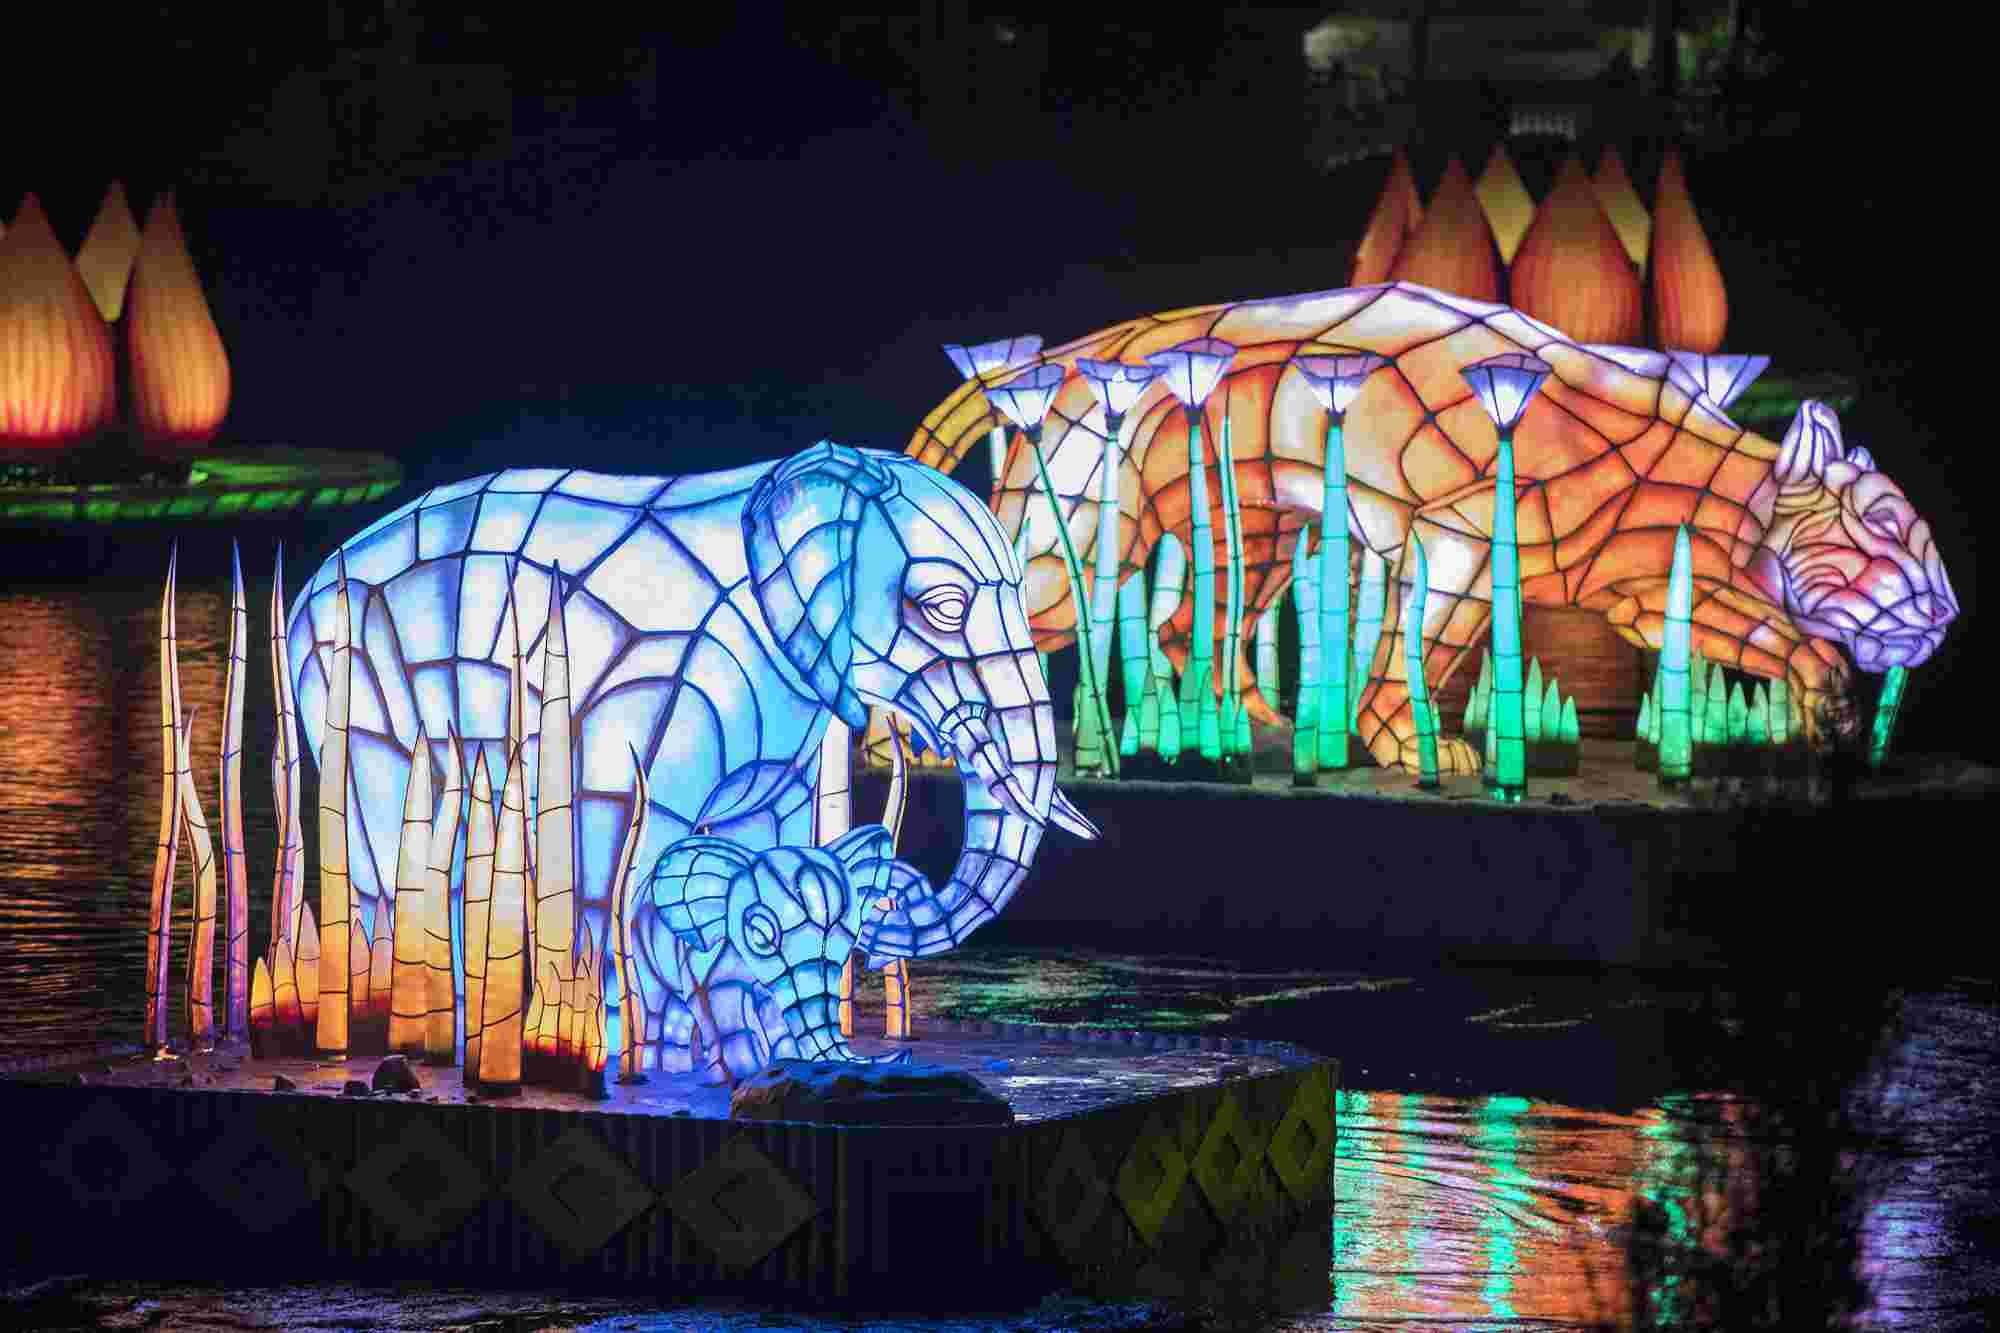 Rivers of Light Nighttime Spectacular Opens Friday at Disney's Animal Kingdom